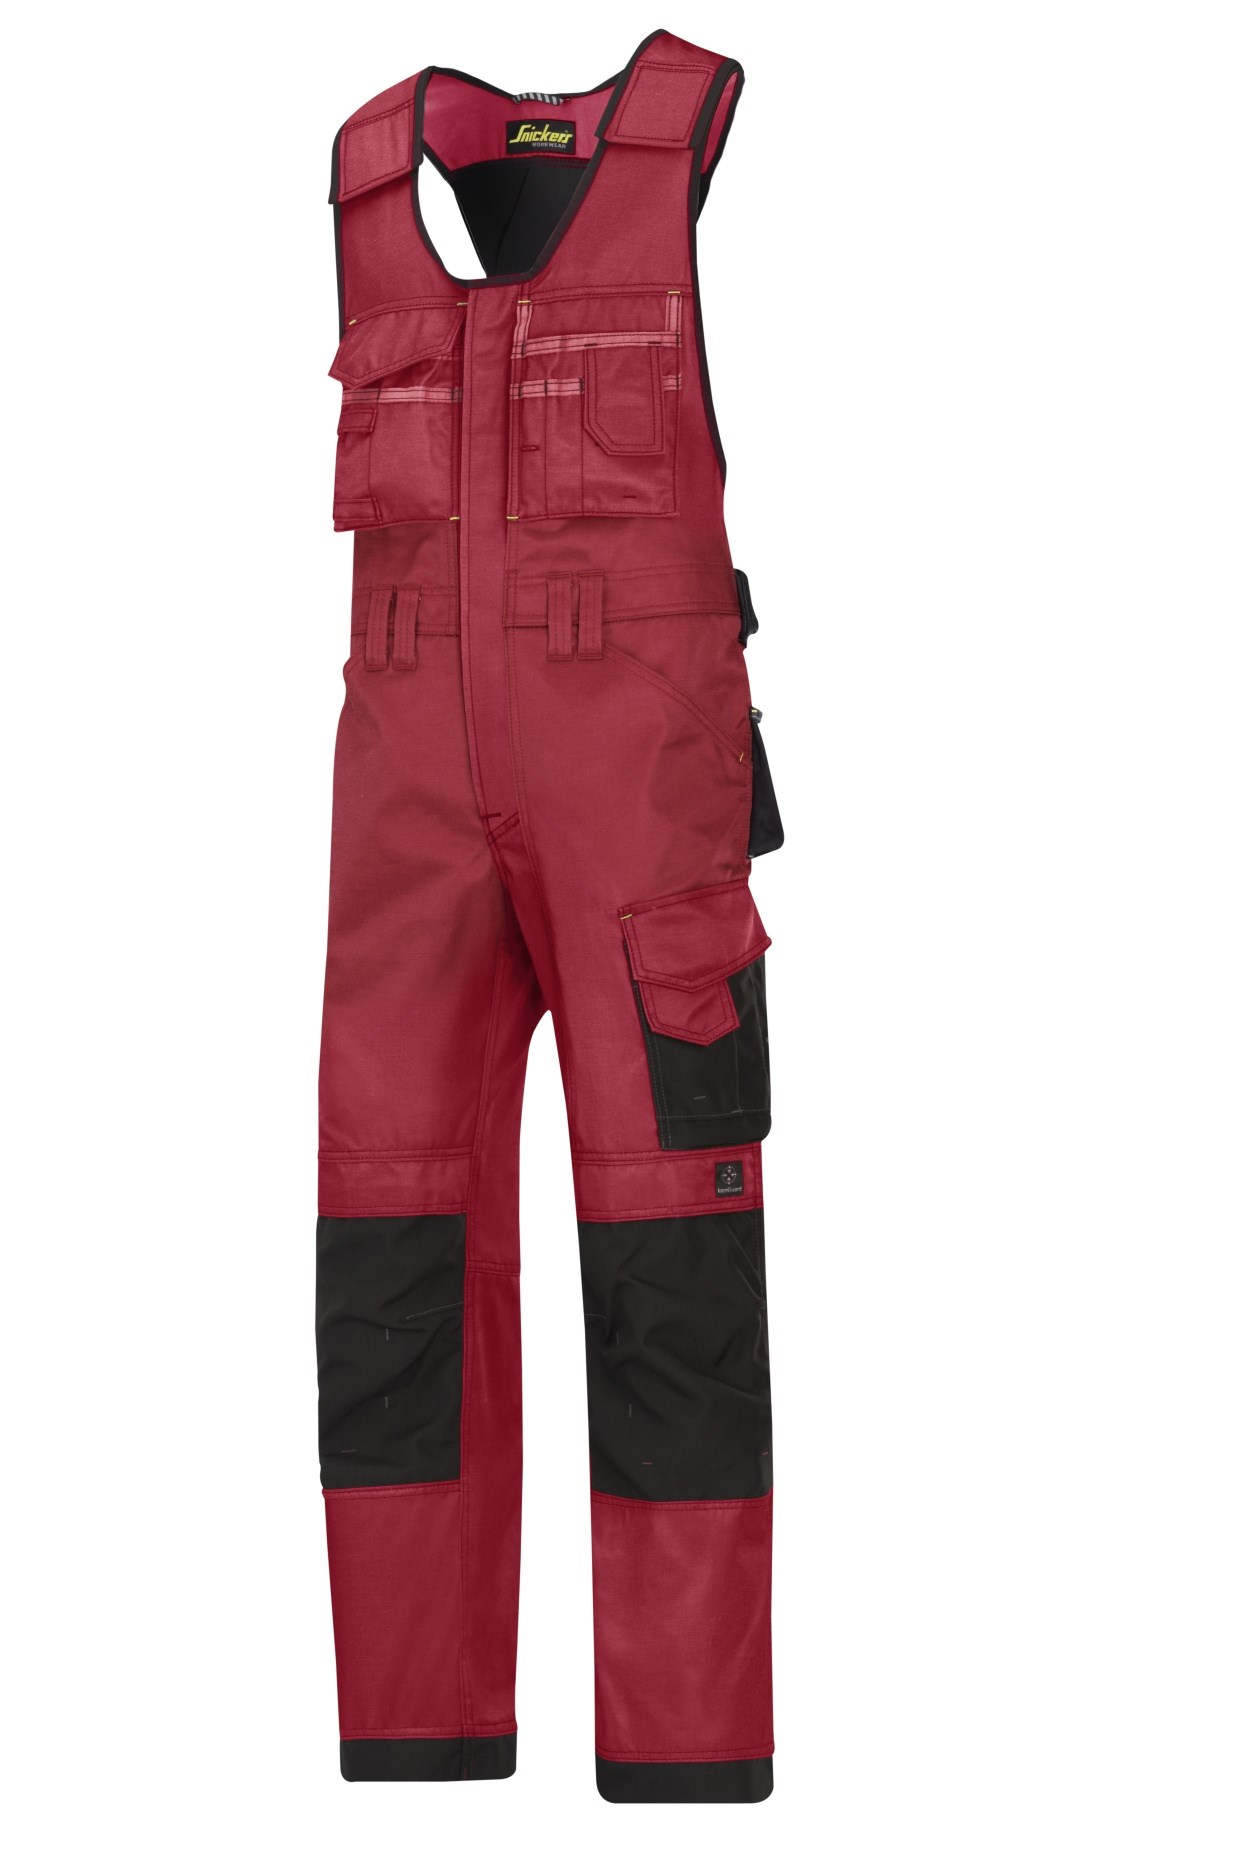 0312 helbukse snickers Workwear